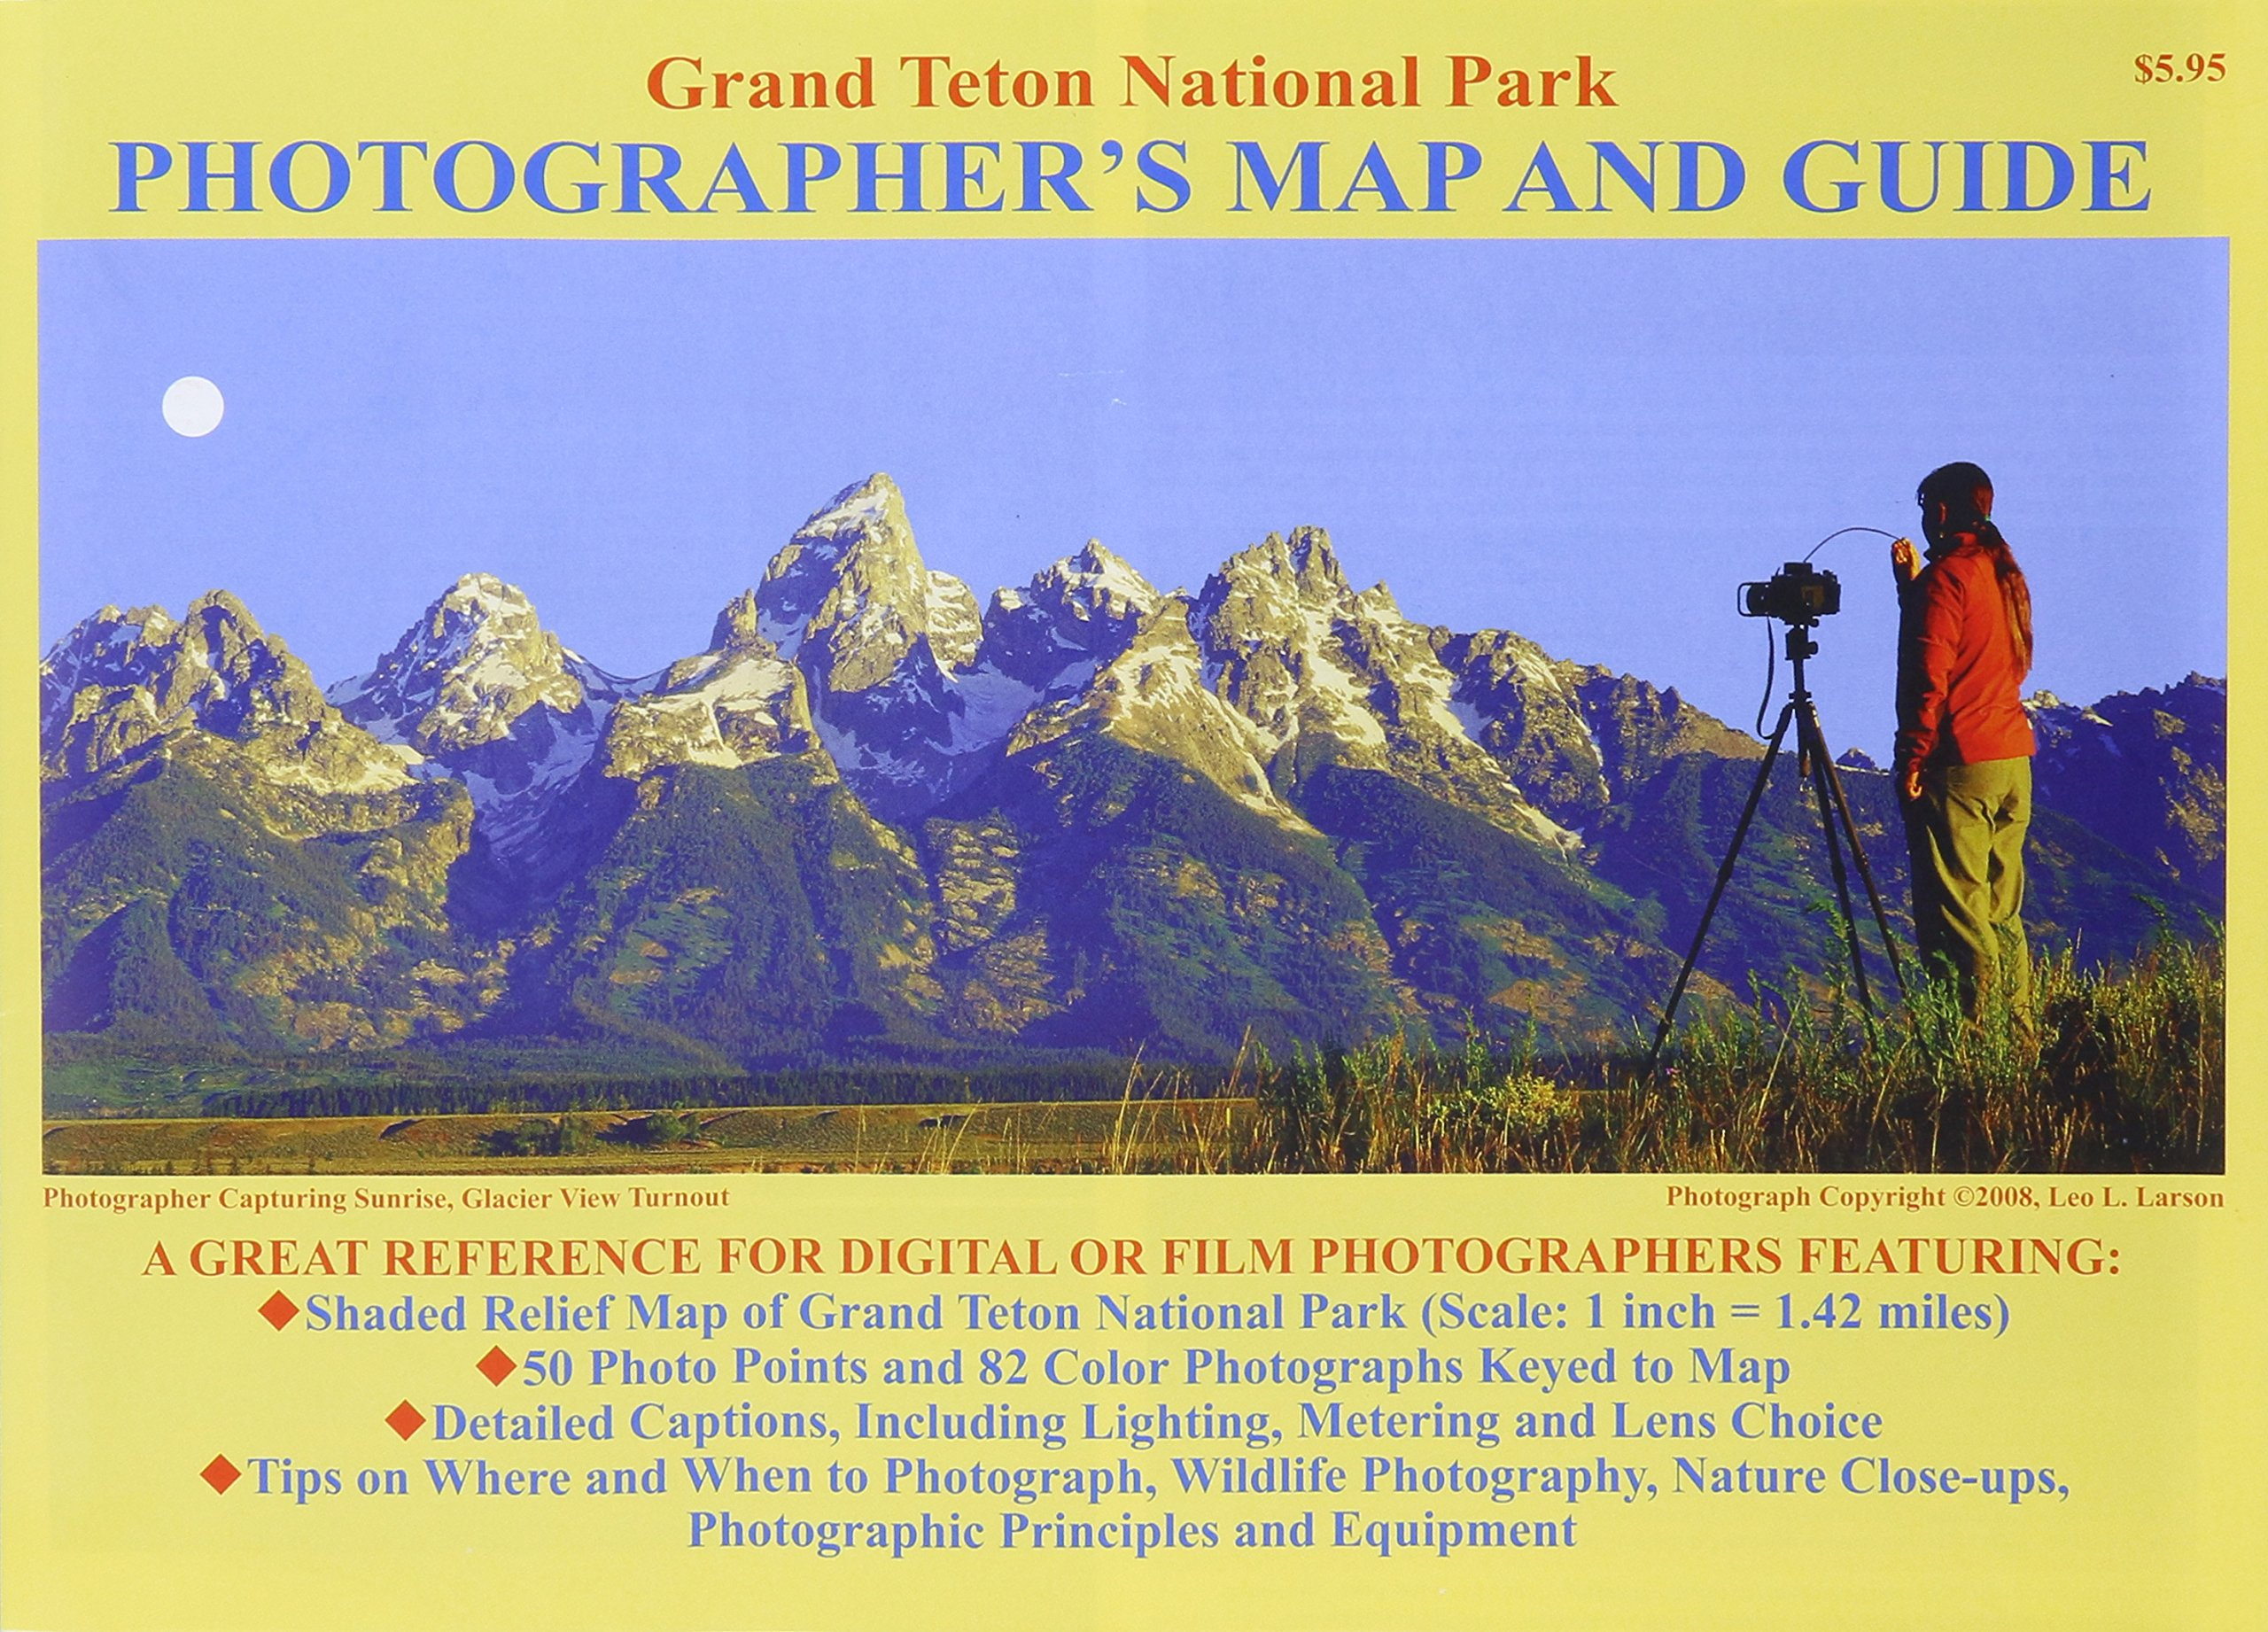 Grand Teton National Park Photographer's Map and Guide PDF